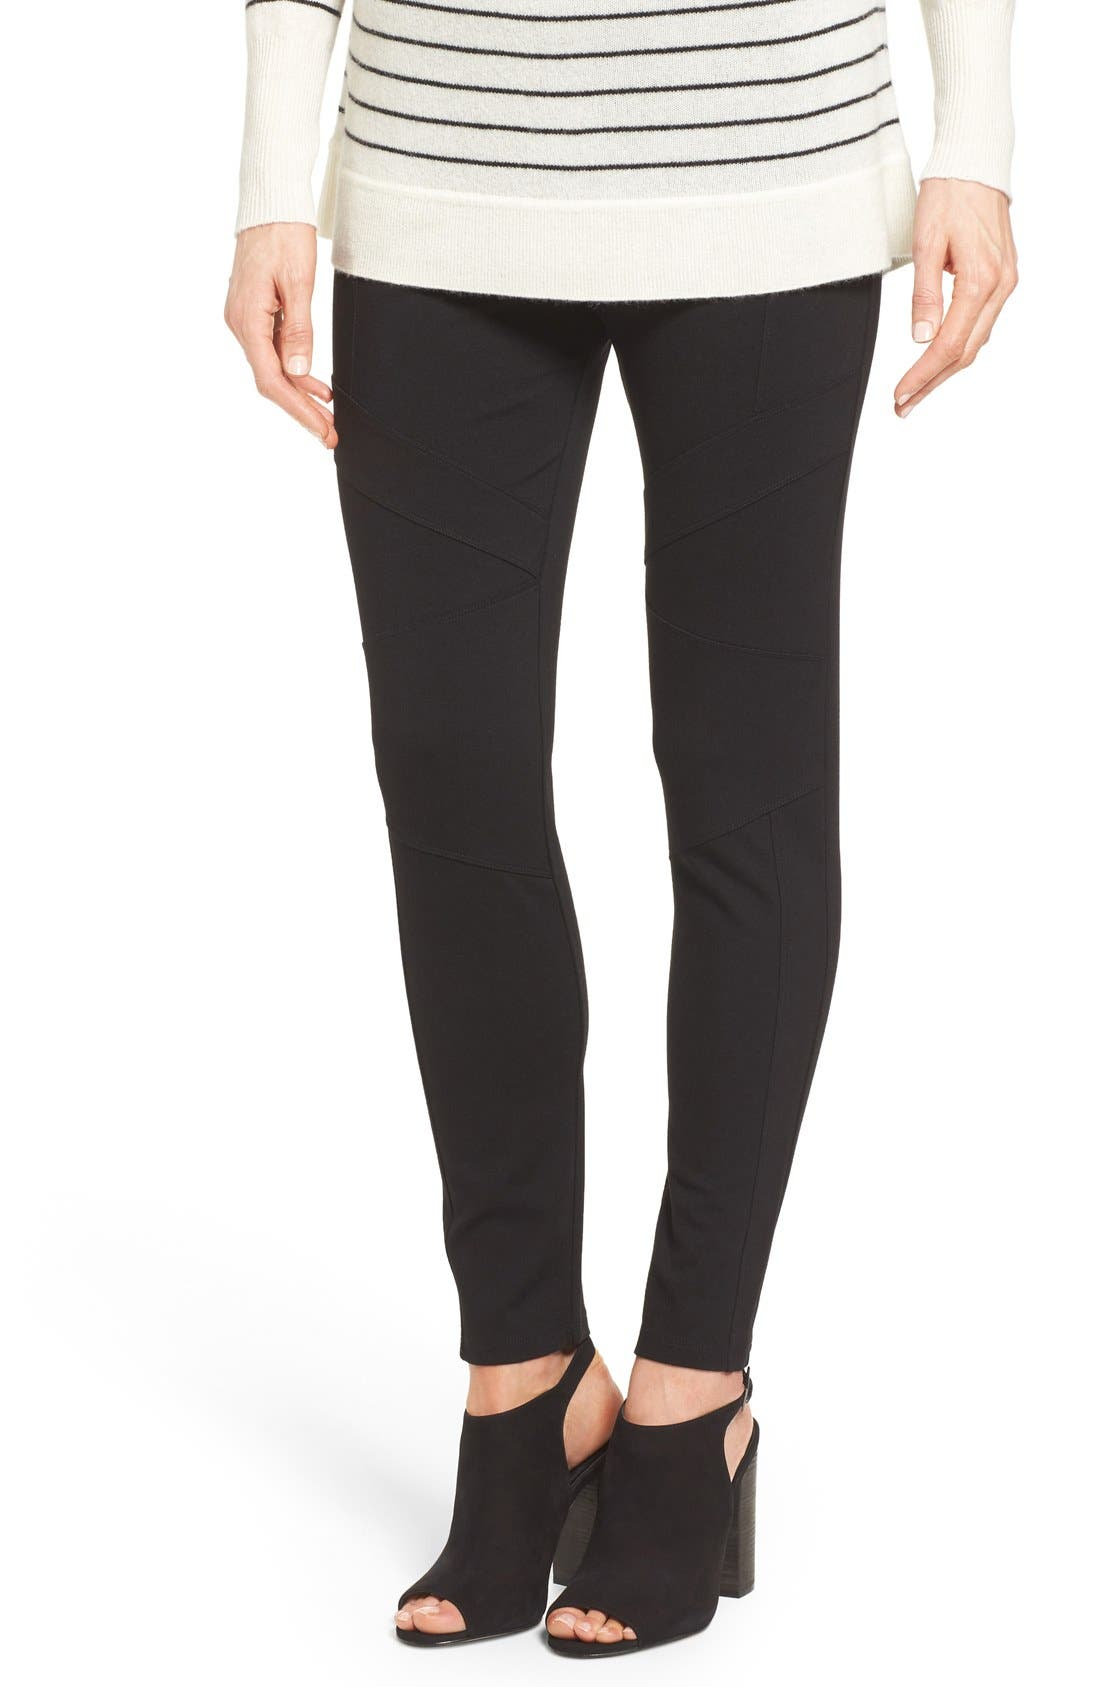 Main Image - Two by Vince Camuto Ponte Knit Moto Leggings